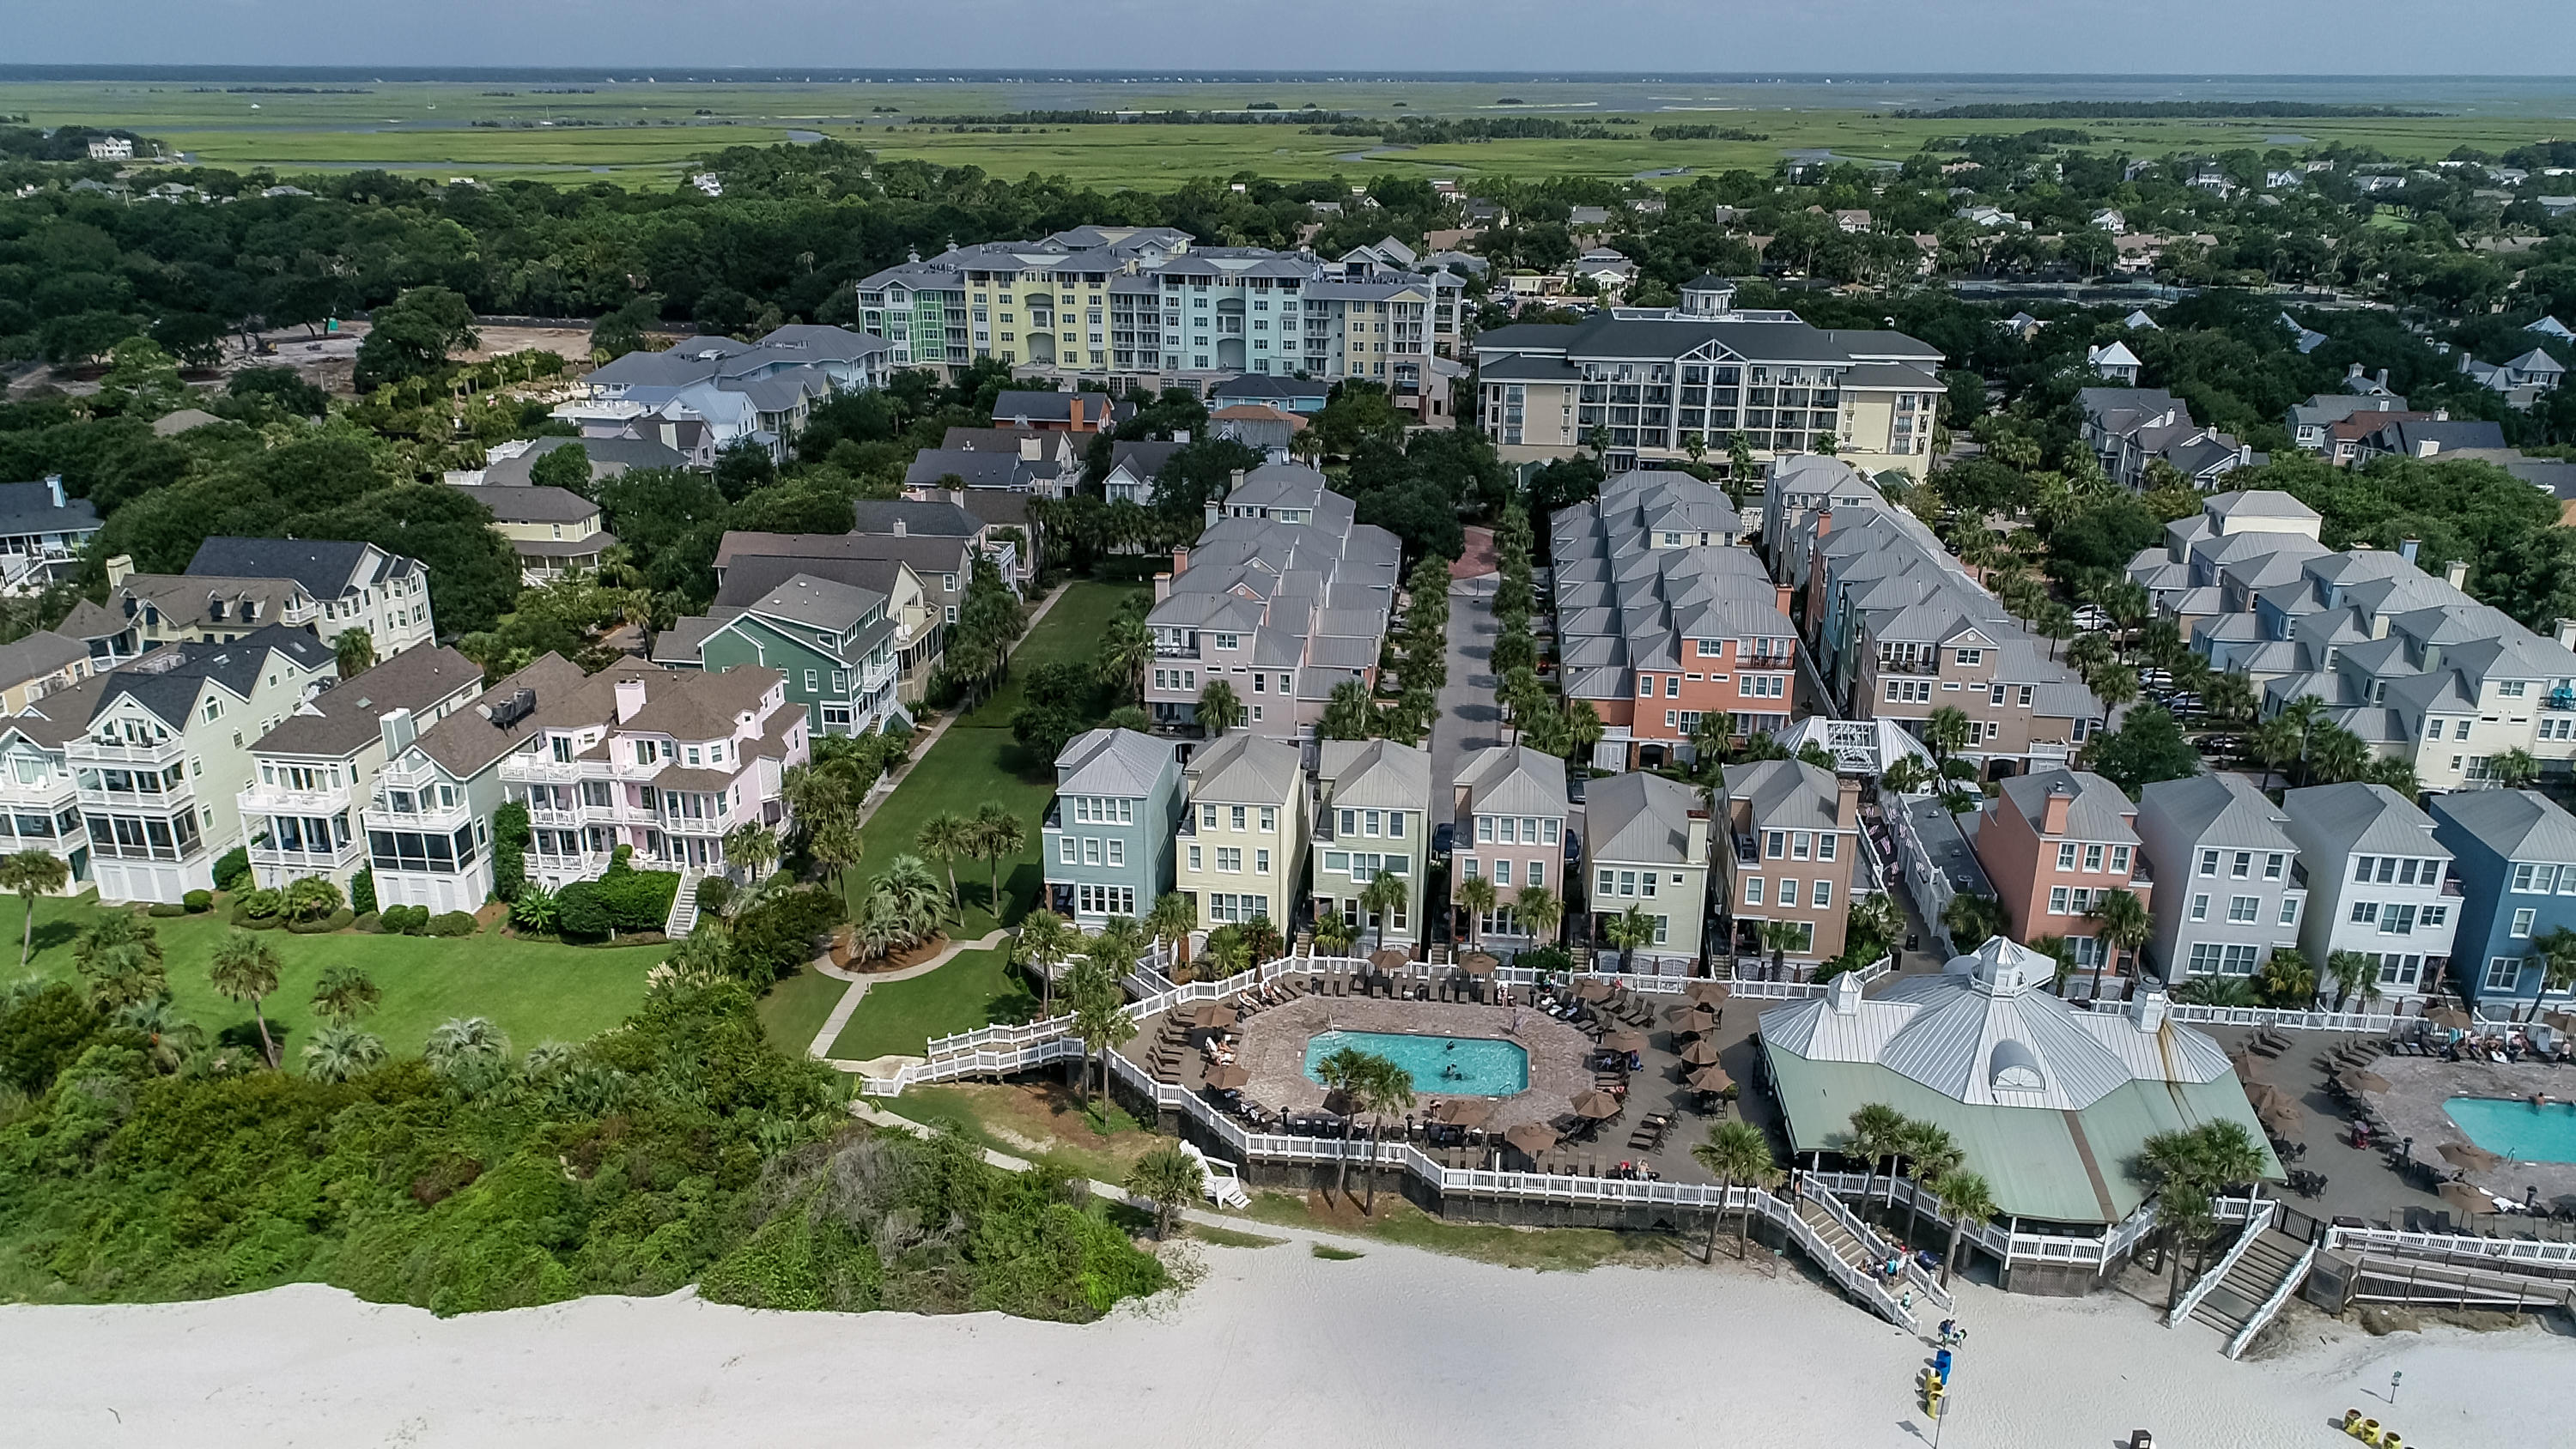 Wild Dunes Resort Homes For Sale - 121 Grand Pavilion, Isle of Palms, SC - 0